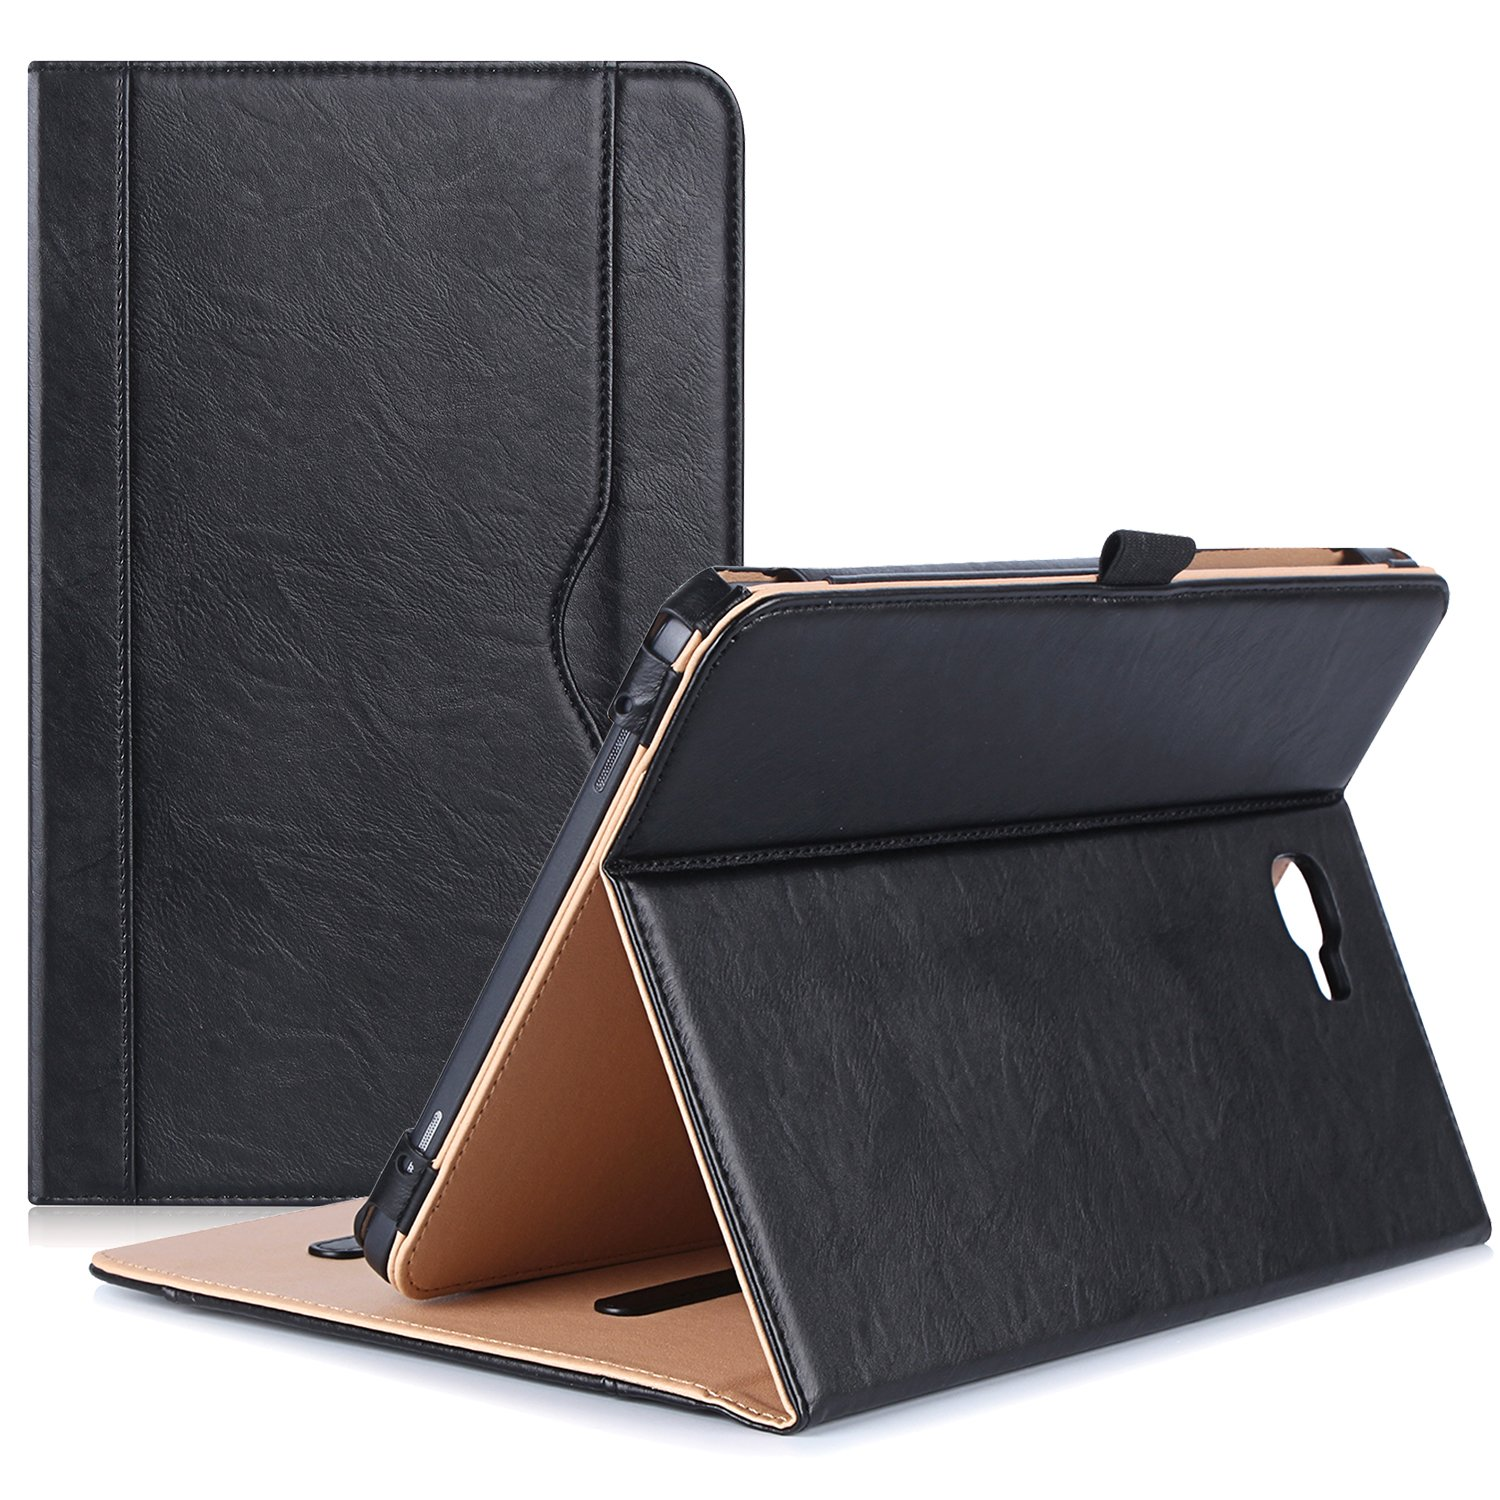 ProCase Samsung Galaxy Tab A 10.1 Case - Stand Folio Case Cover for Galaxy Tab A 10.1'' Tablet SM-T580 T585 T587 (NO S Pen Version), with Multiple Viewing Angles, Document Card Pocket - Black